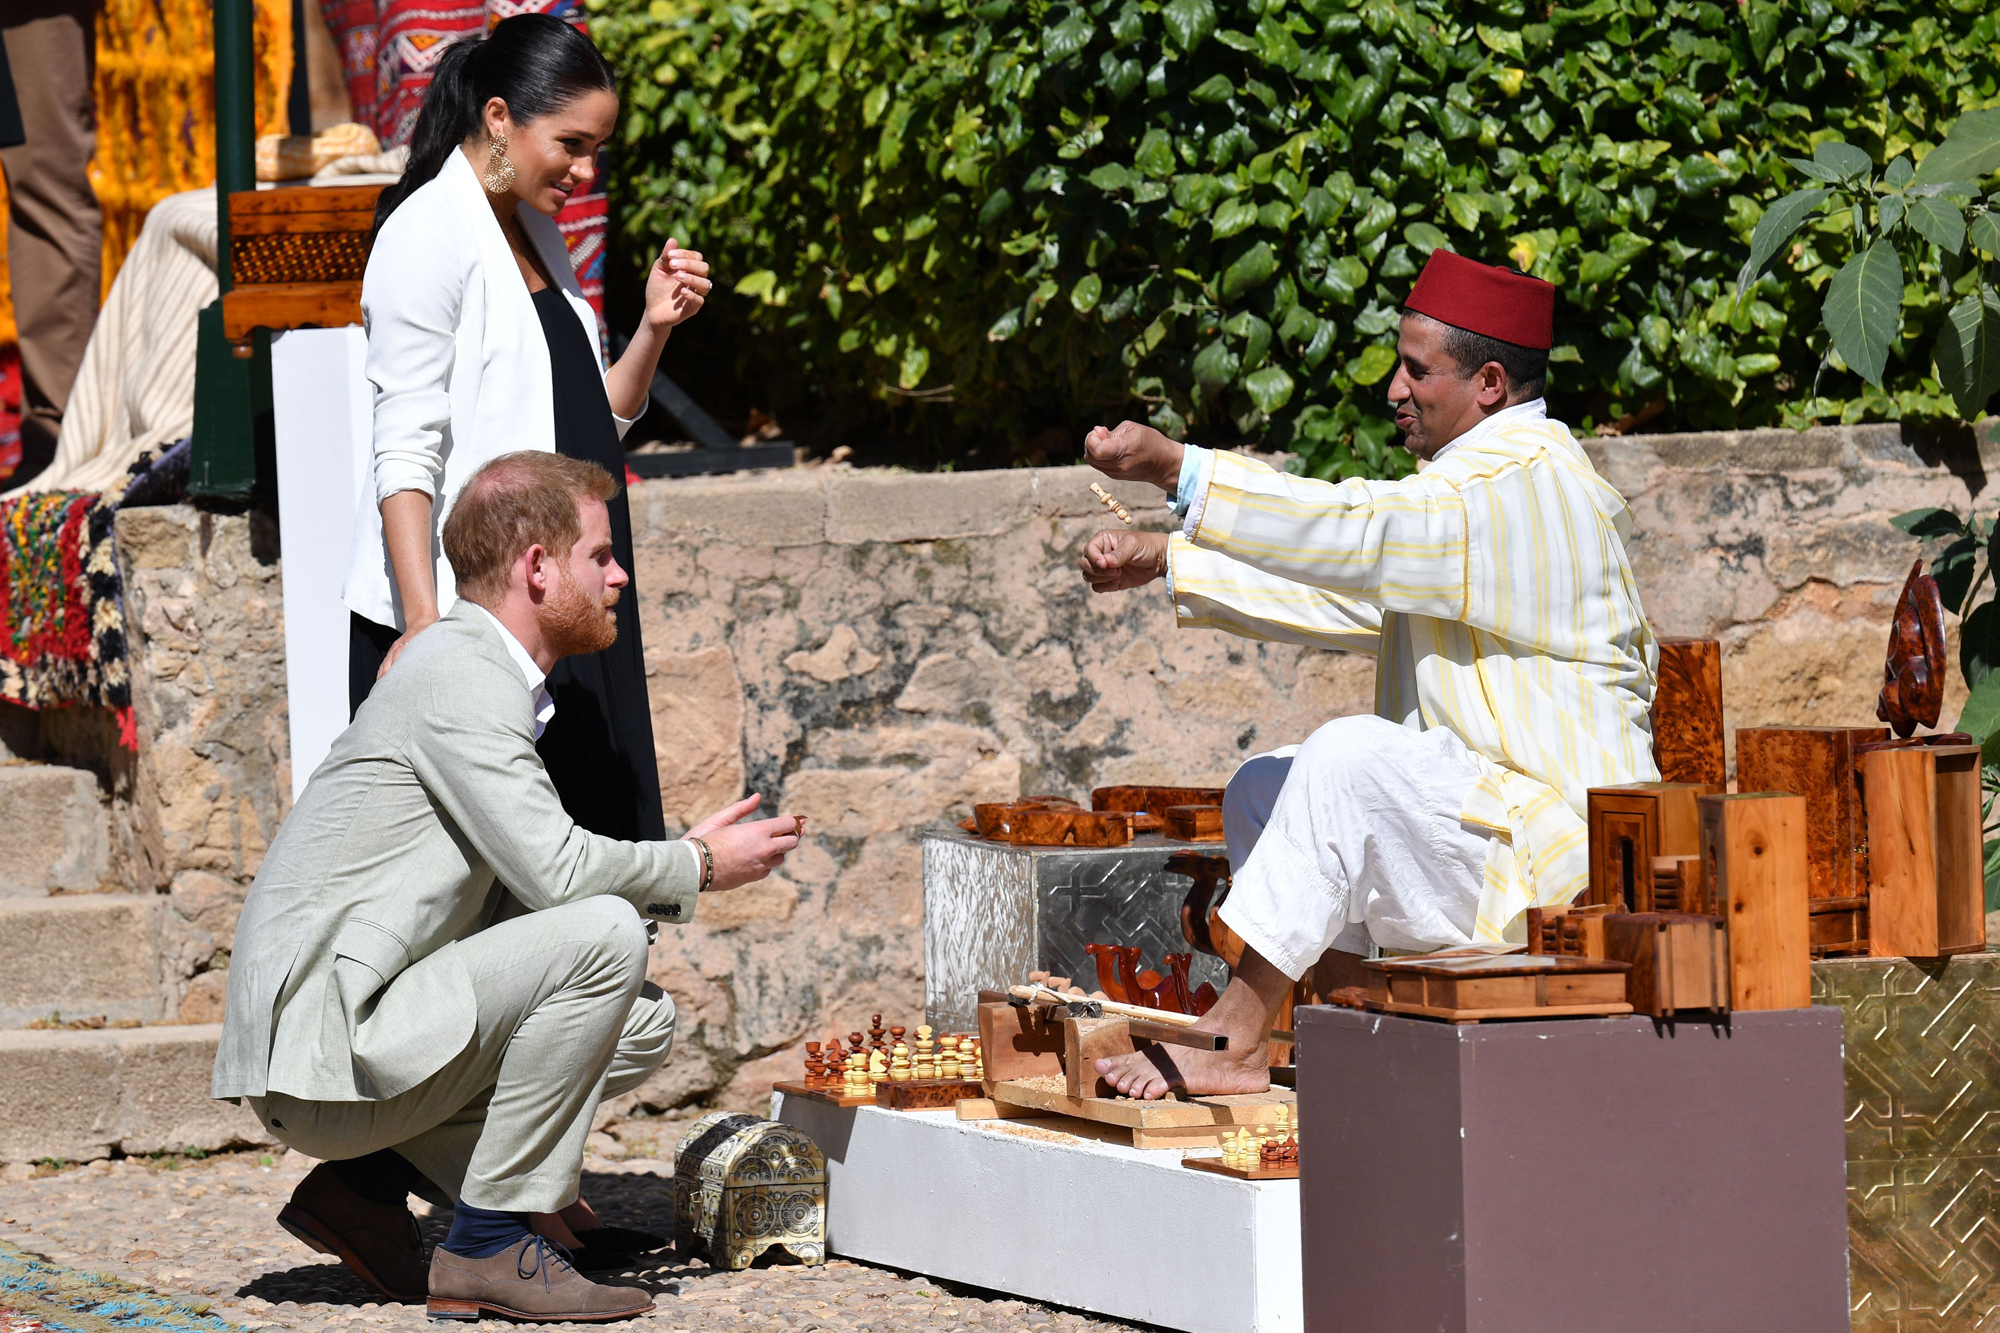 Prince Harry and Meghan Duchess of Sussex visit to Morocco - 25 Feb 2019